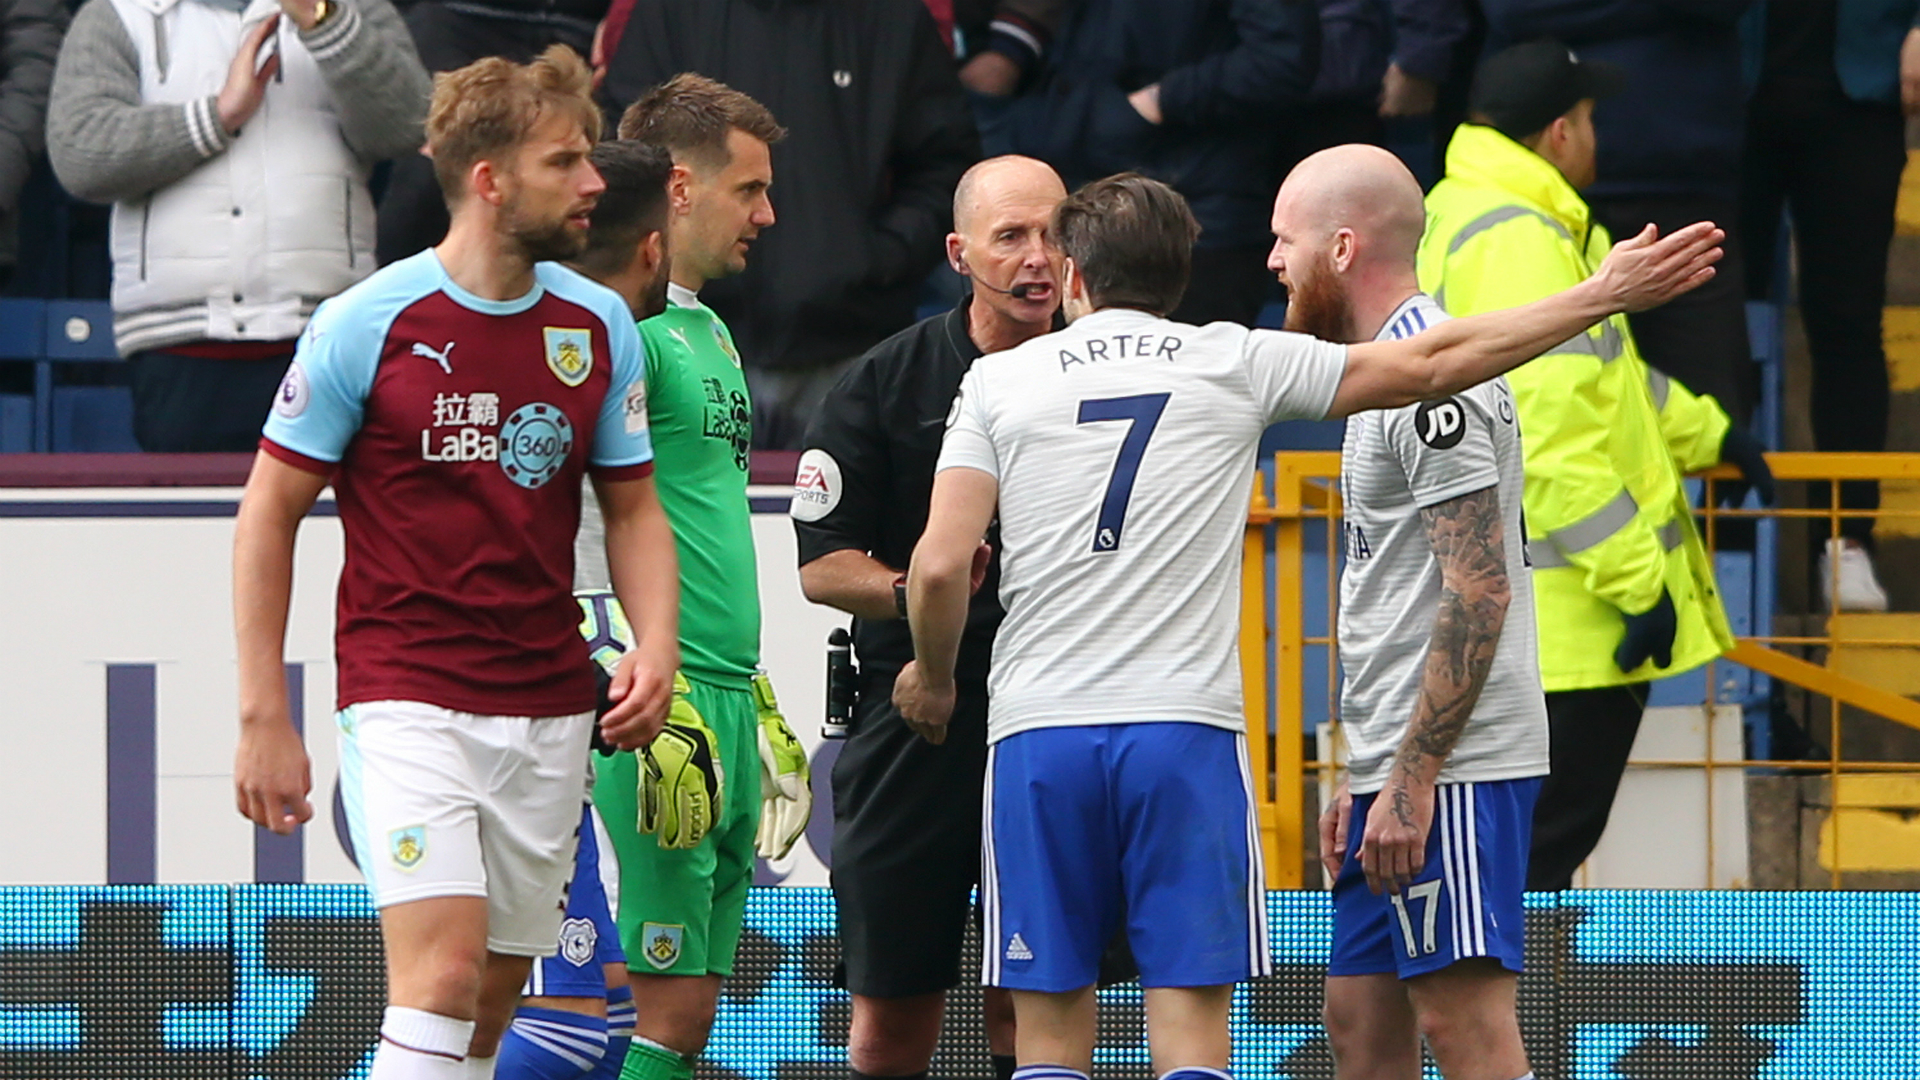 There were two handballs - Warnock annoyed by Dean decisions